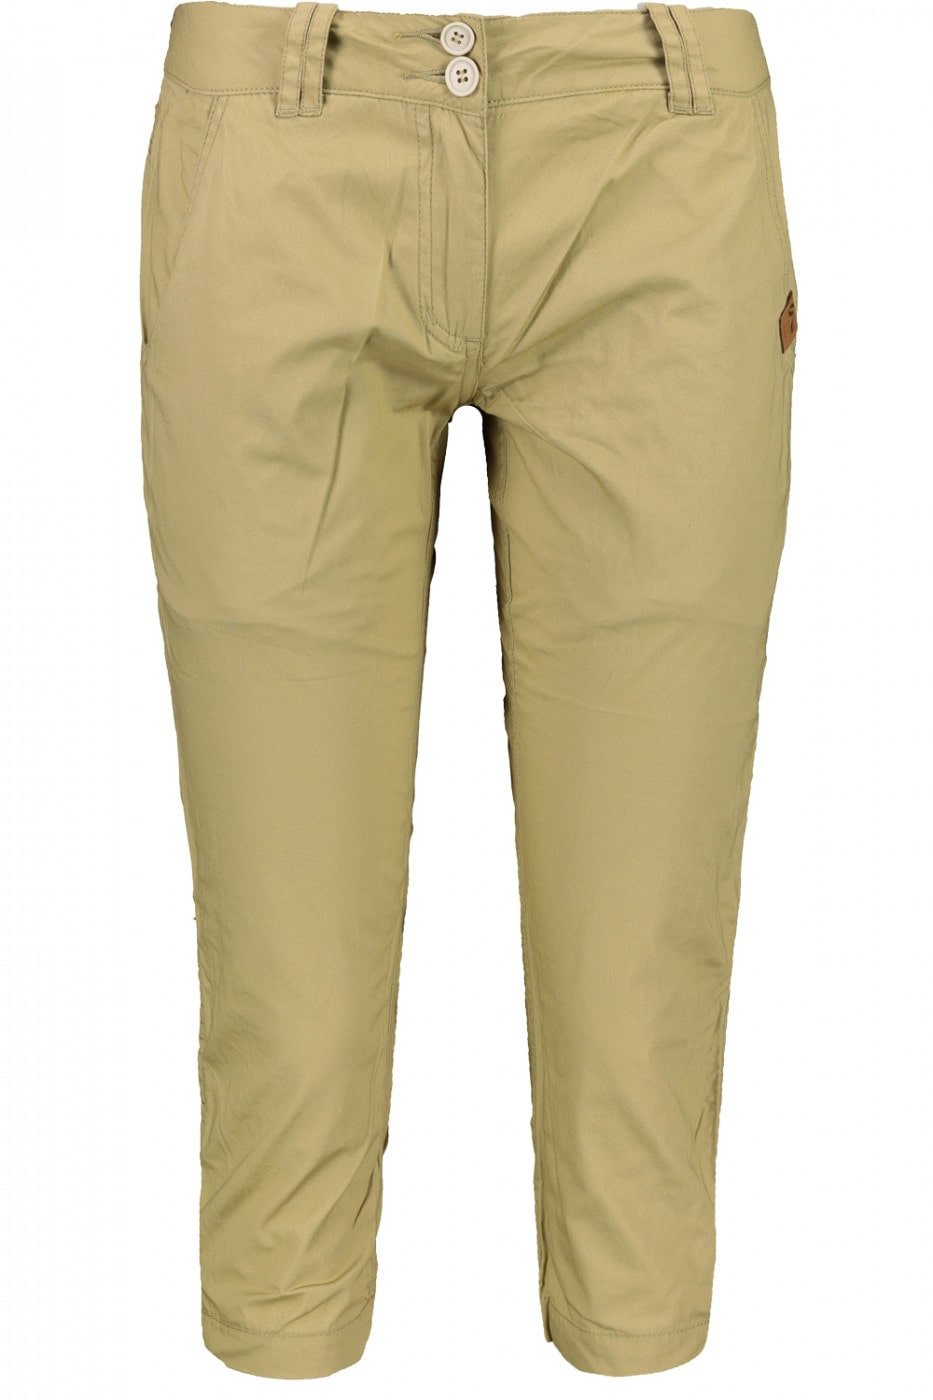 Women's 3/4 pants NORTHFINDER EWELYNKA